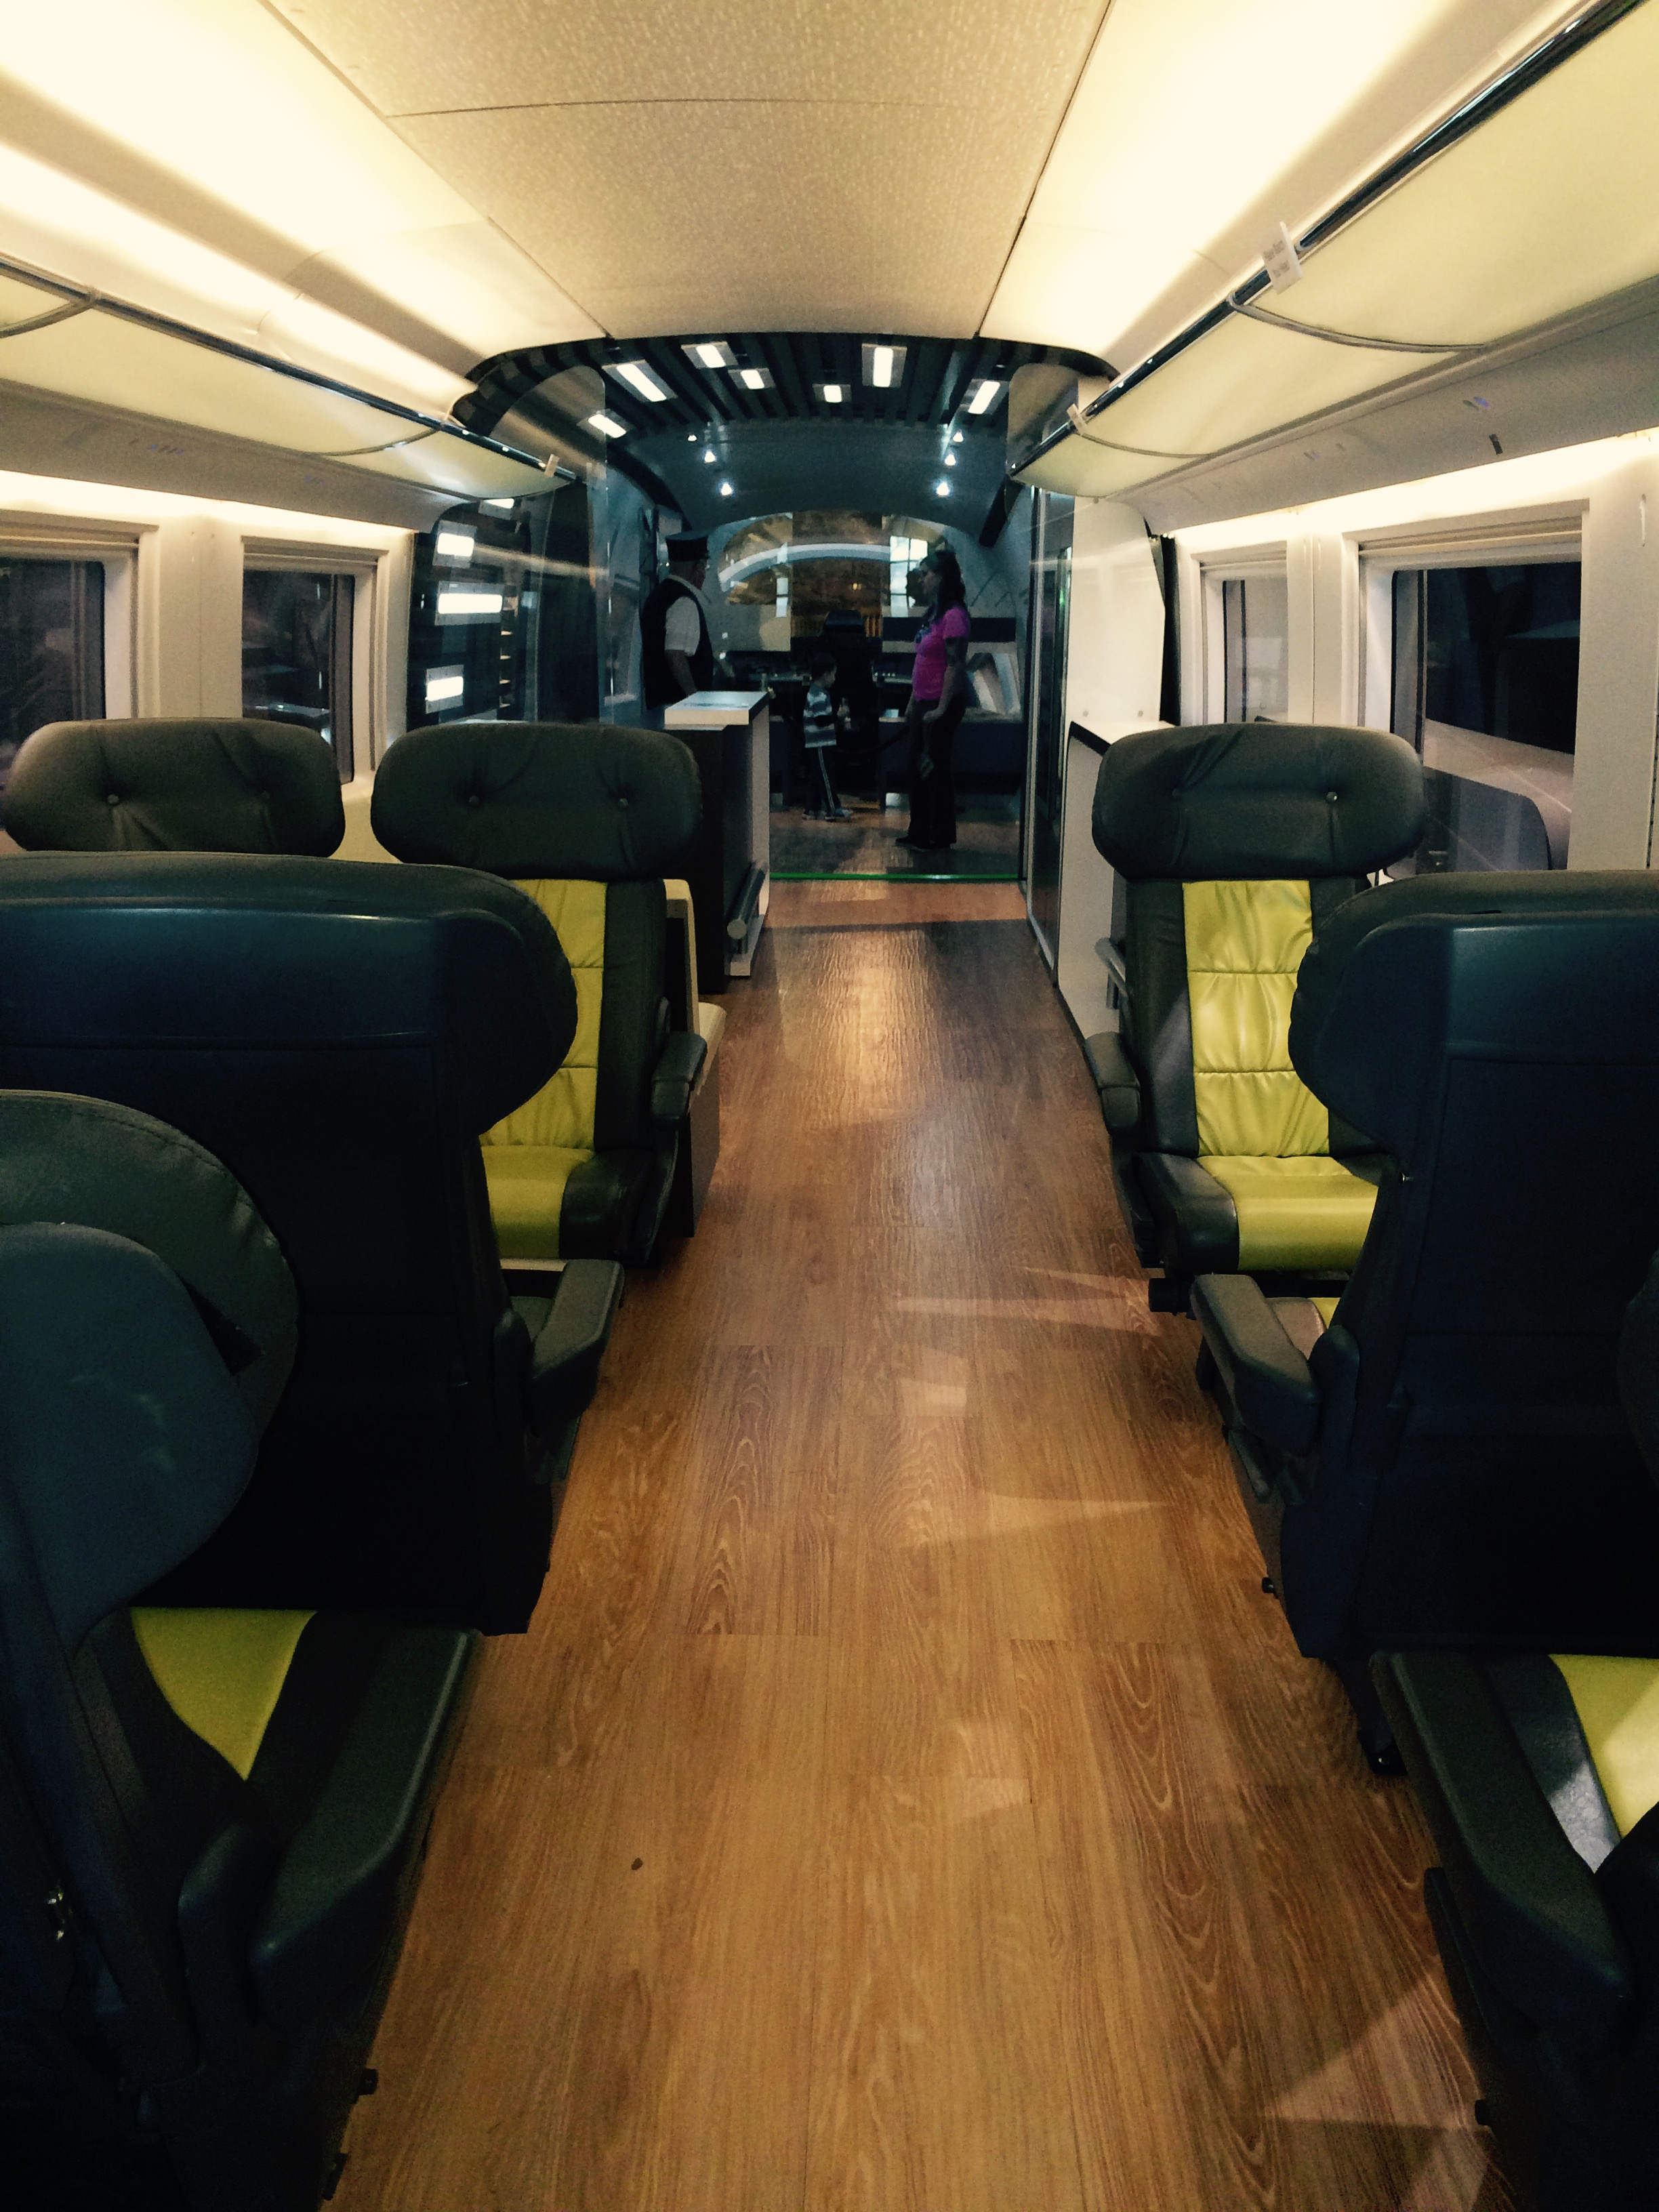 high speed rail exhibit shows future of california train travel. Black Bedroom Furniture Sets. Home Design Ideas